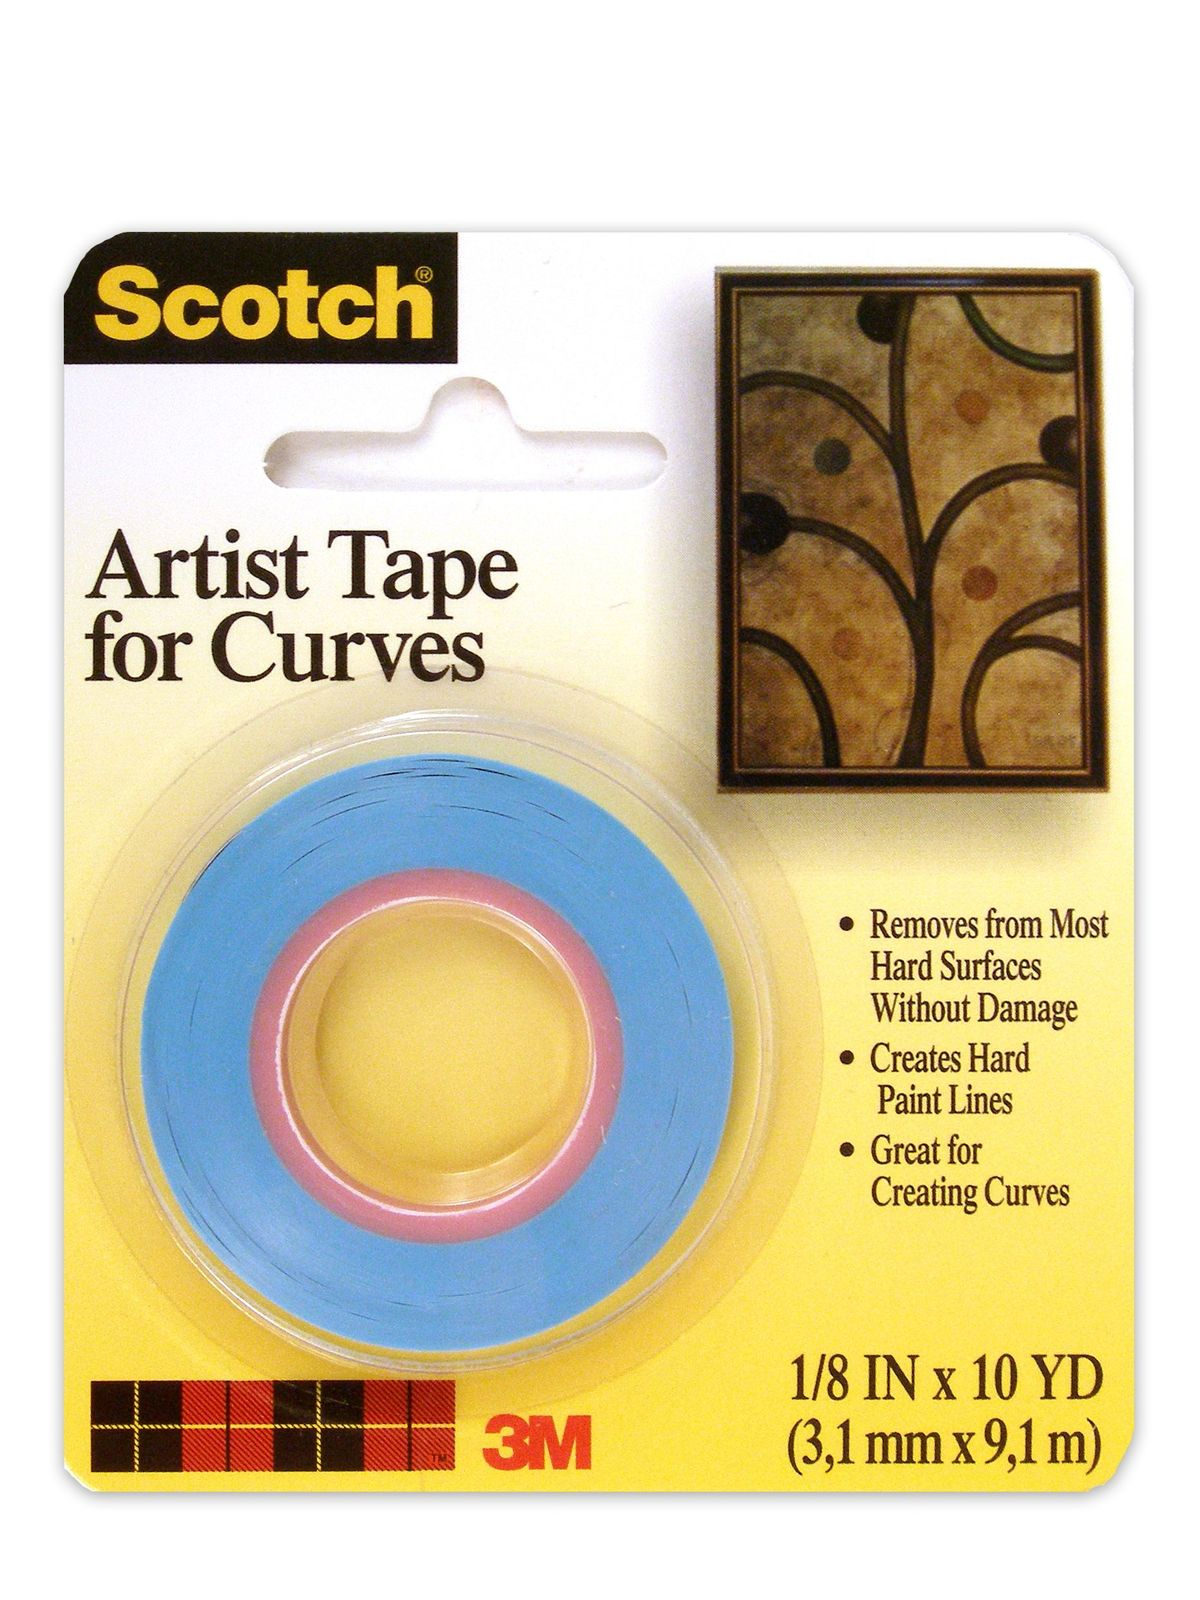 Scotch Artist Tape for Curves